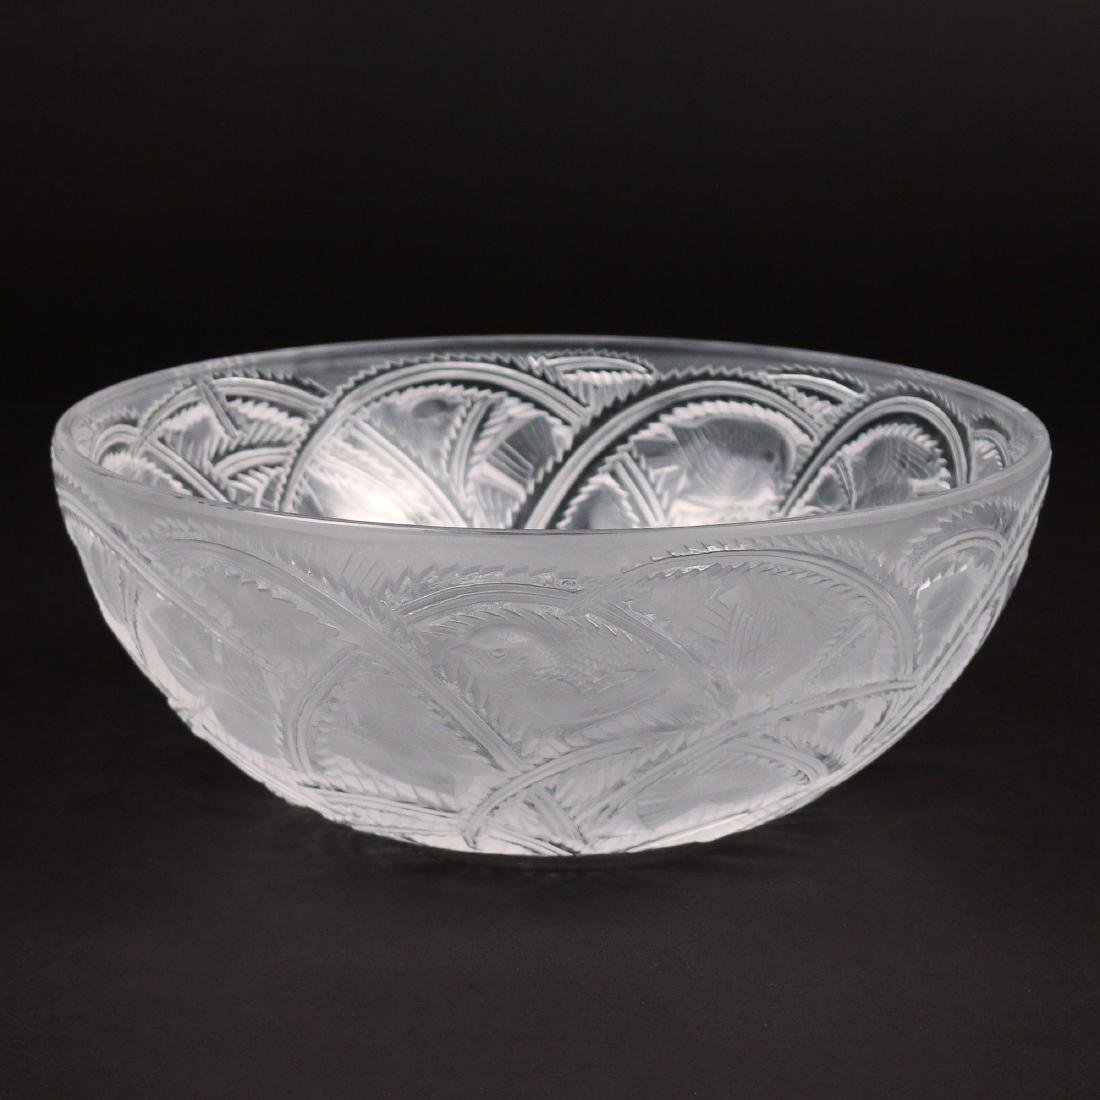 LALIQUE PINSONS BIRD BOWL